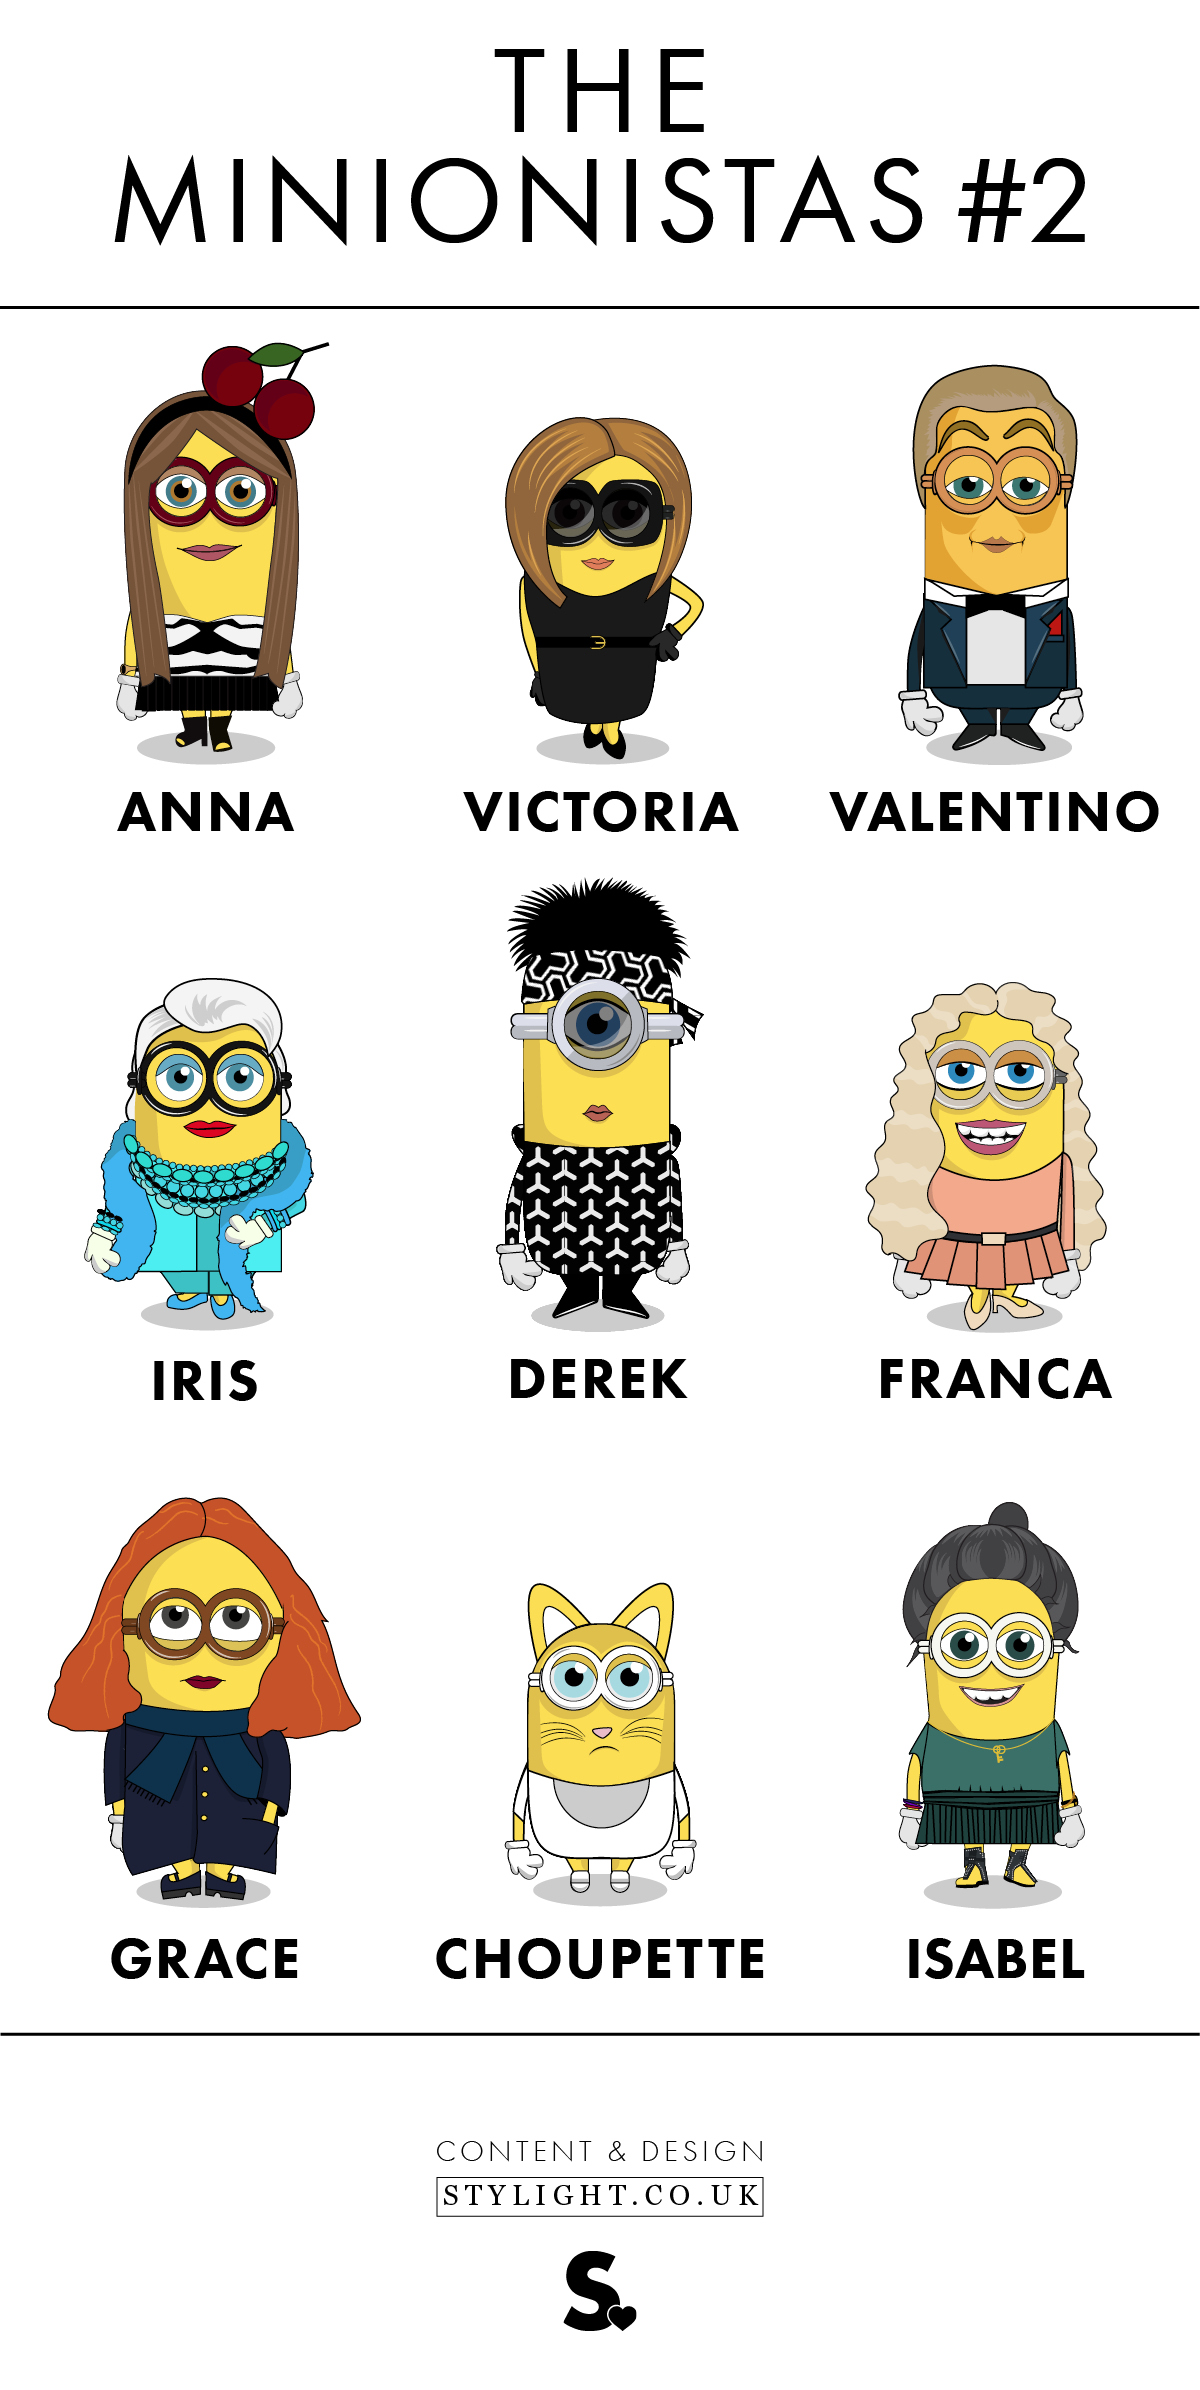 Minions Stylight Minionistas Infographic Blogger Edition